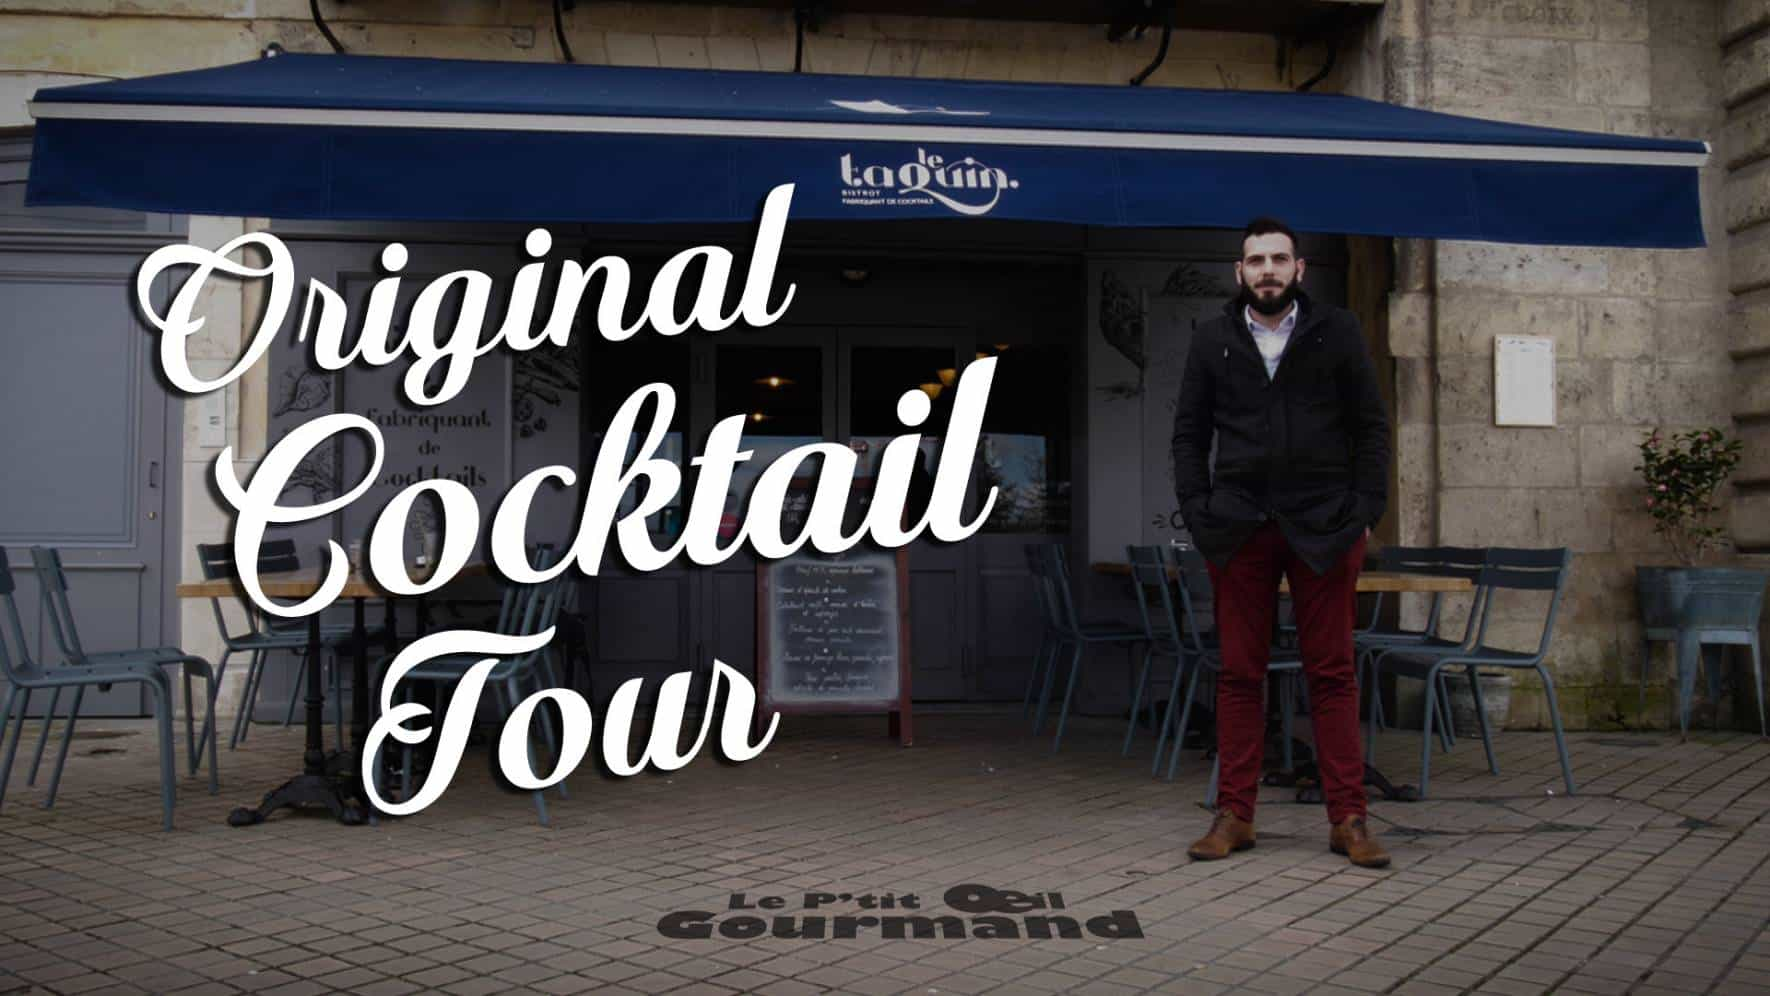 Original Cocktail Tour - Le P'tit Oeil Gourmand